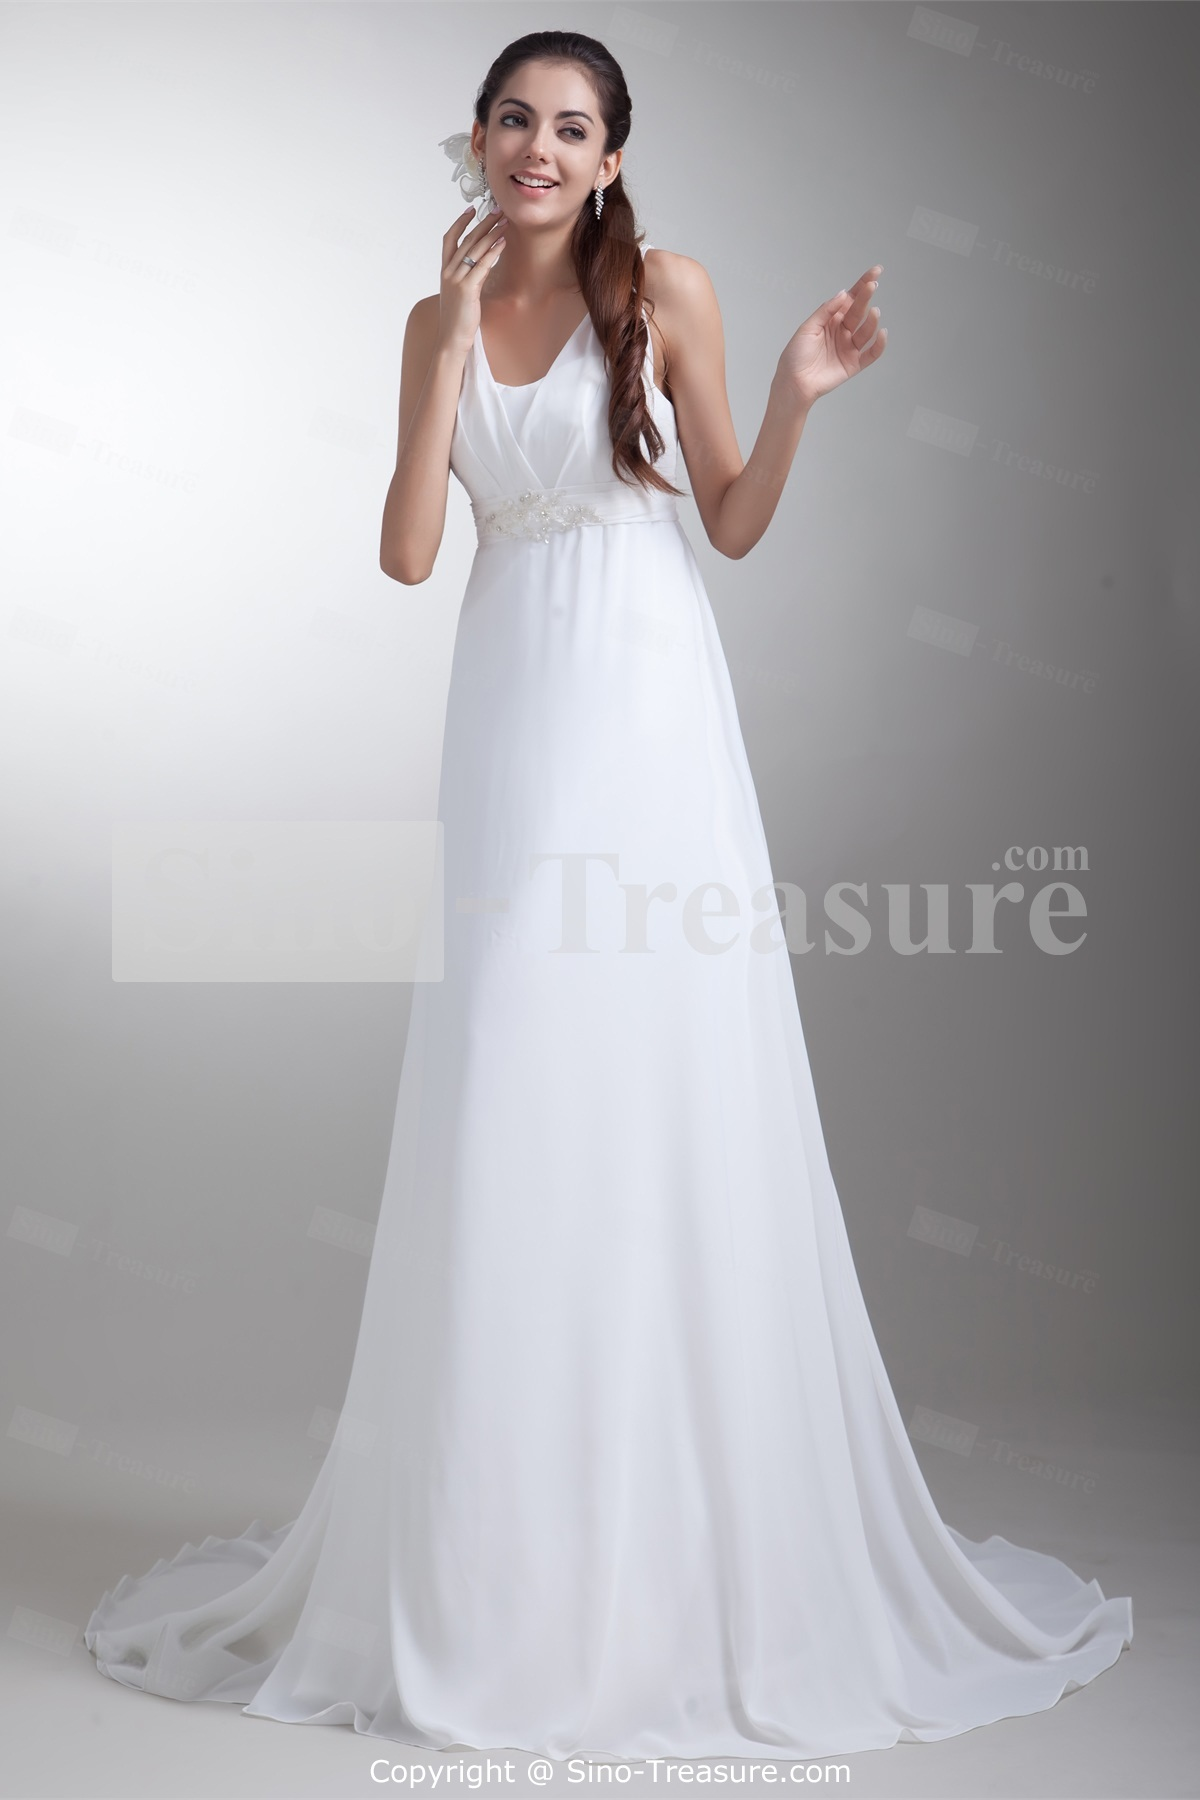 white summer wedding dresses photo - 1